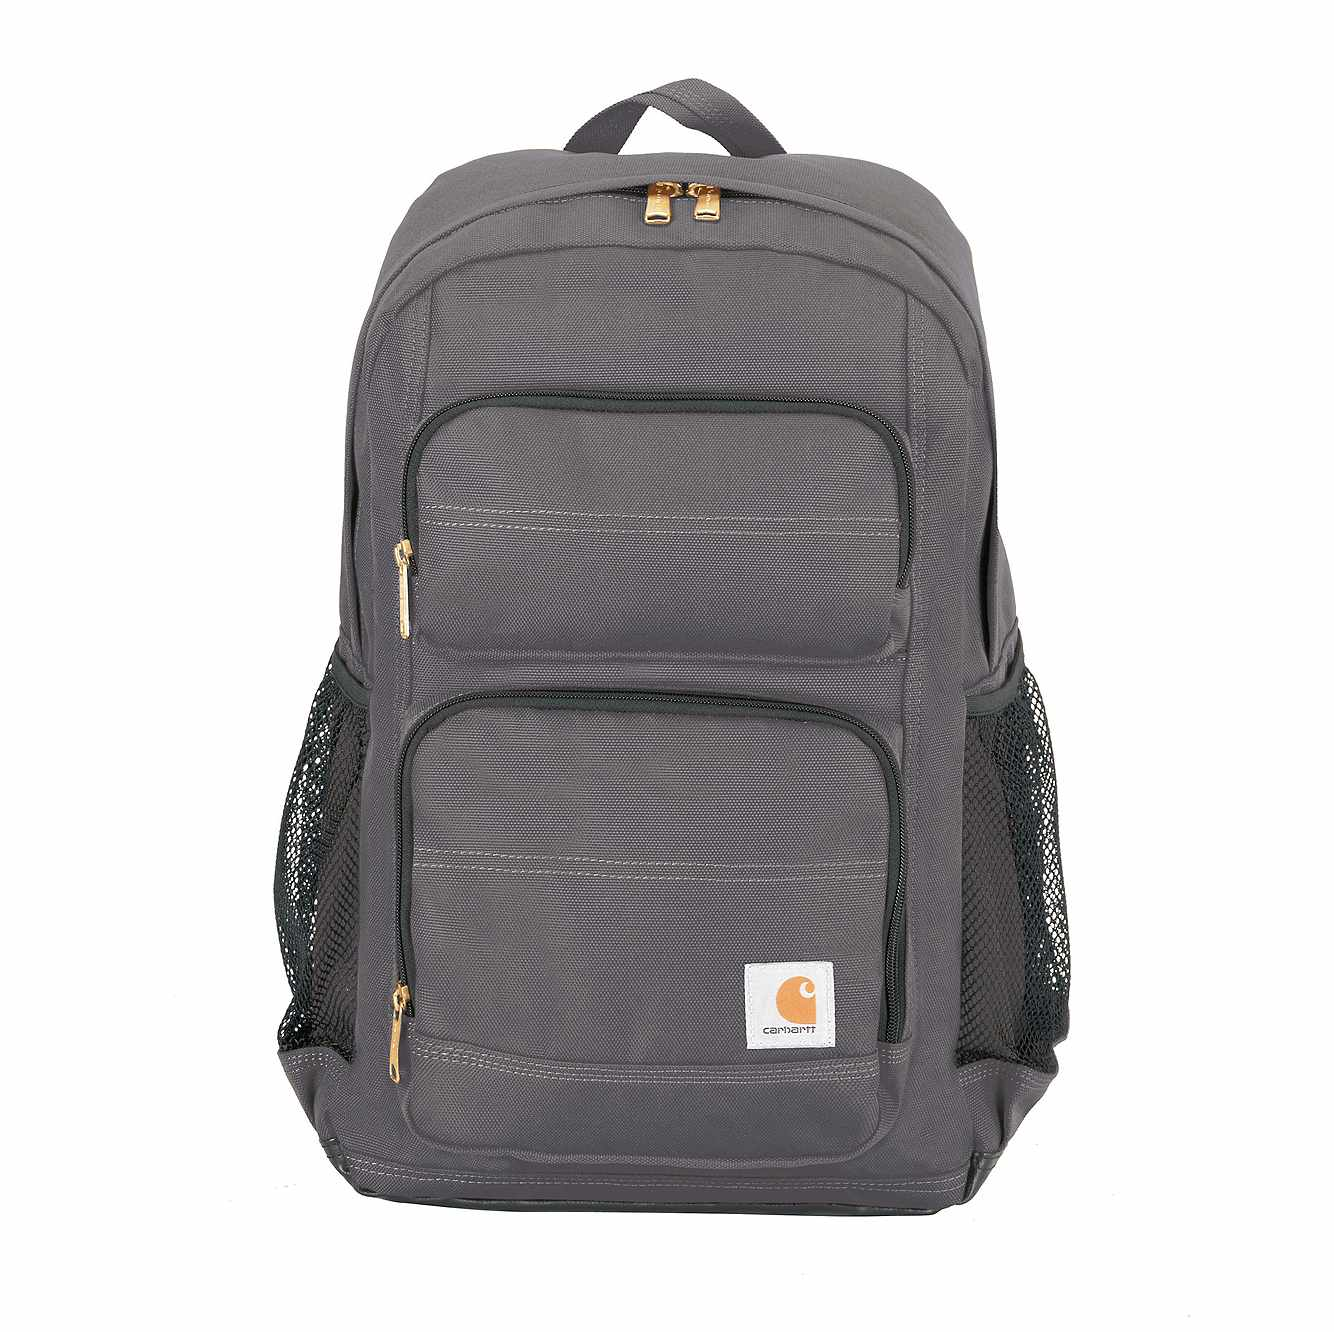 Picture of Legacy Standard Work Pack in Gray